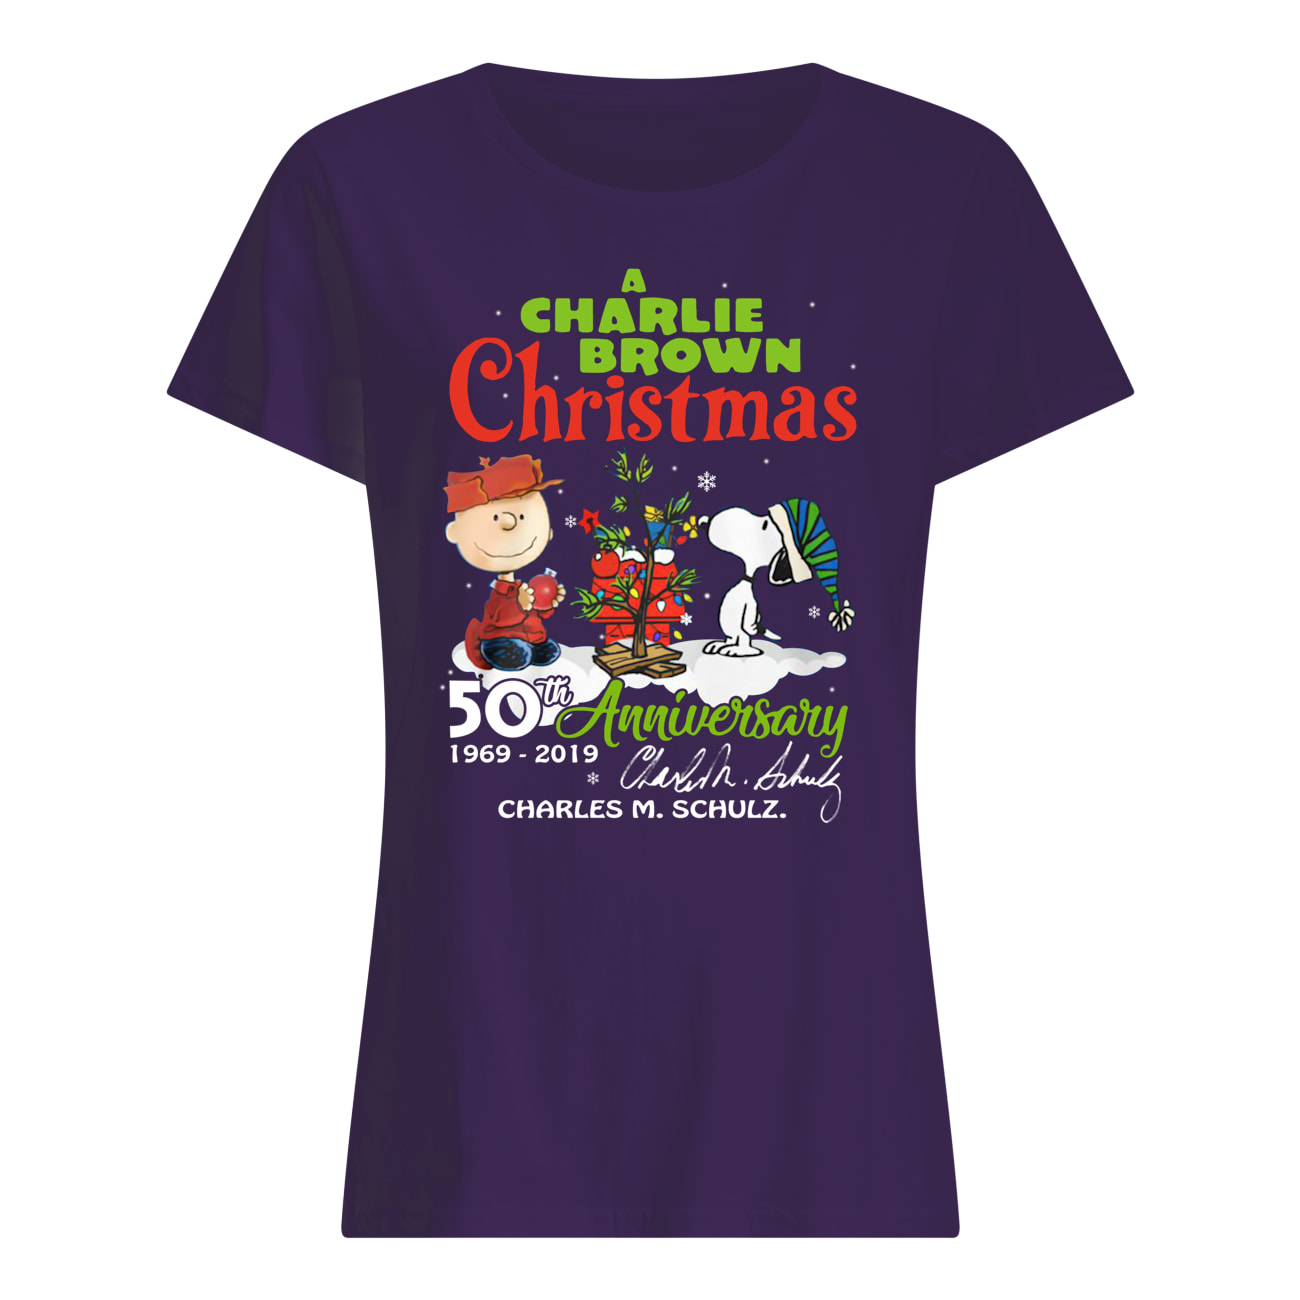 A charlie brown christmas 50th anniversary womens shirt